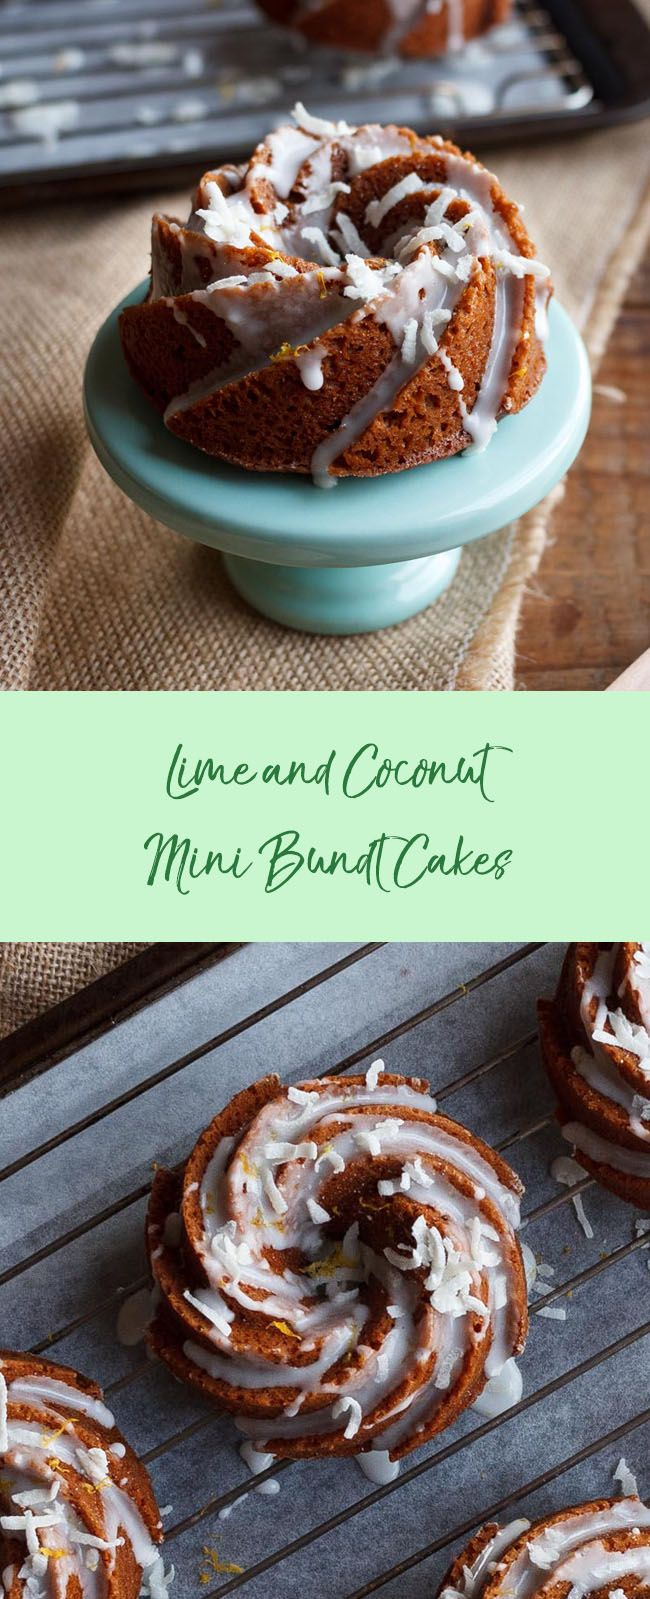 LIME AND COCONUT MINI BUNDT CAKES: I love mini cakes because they're easy to share and I tried to create tropical flavours with the lime and coconut.